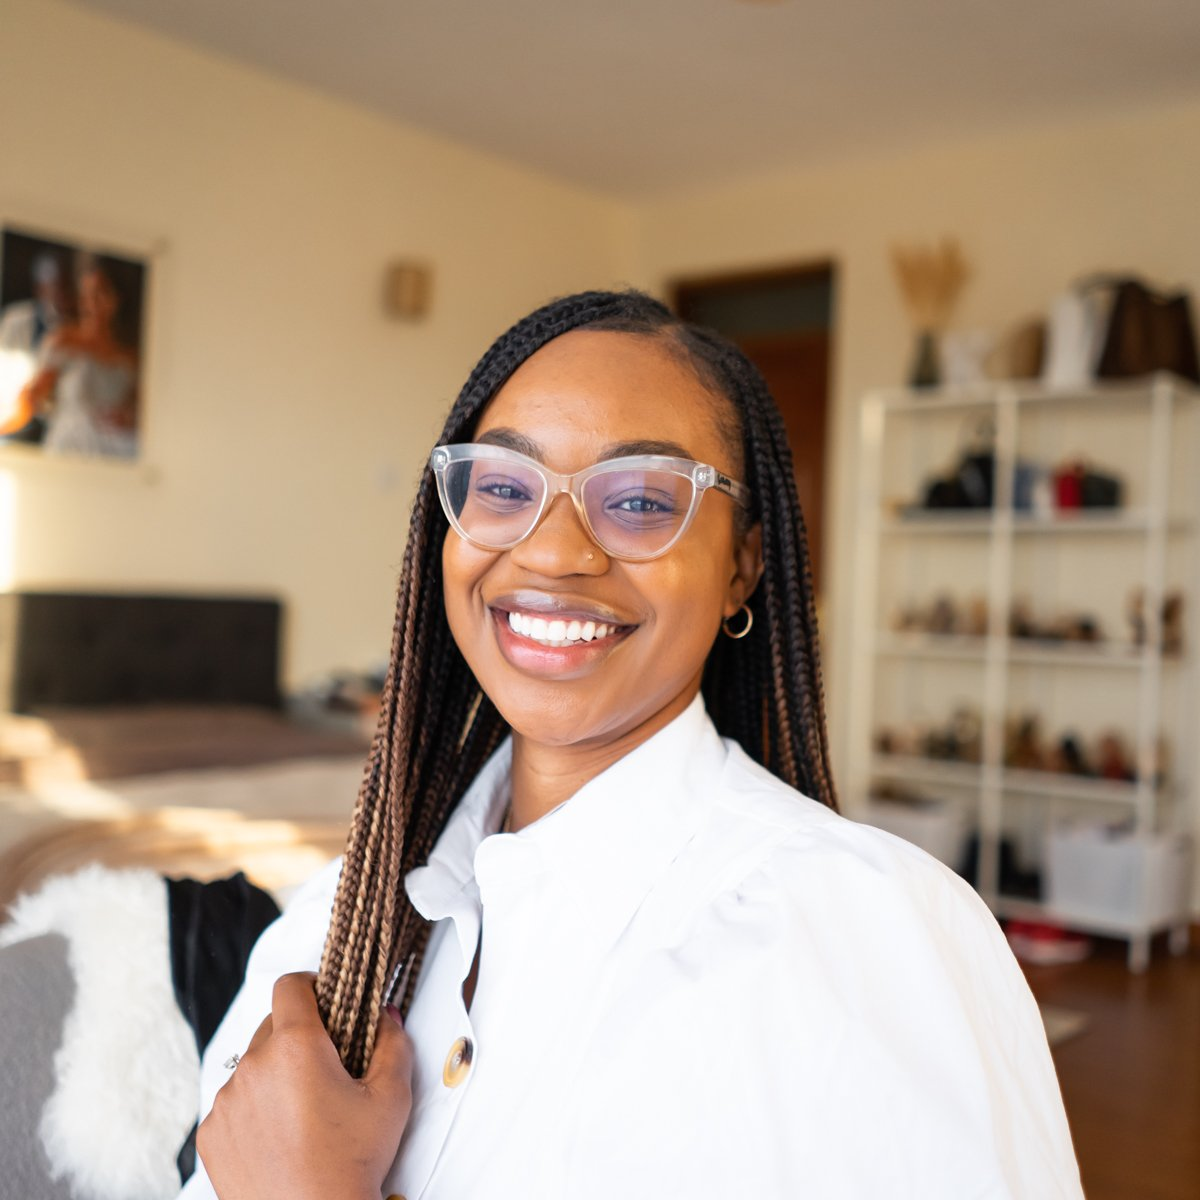 Ijeoma Kola smiling in clear glasses and knotless braids